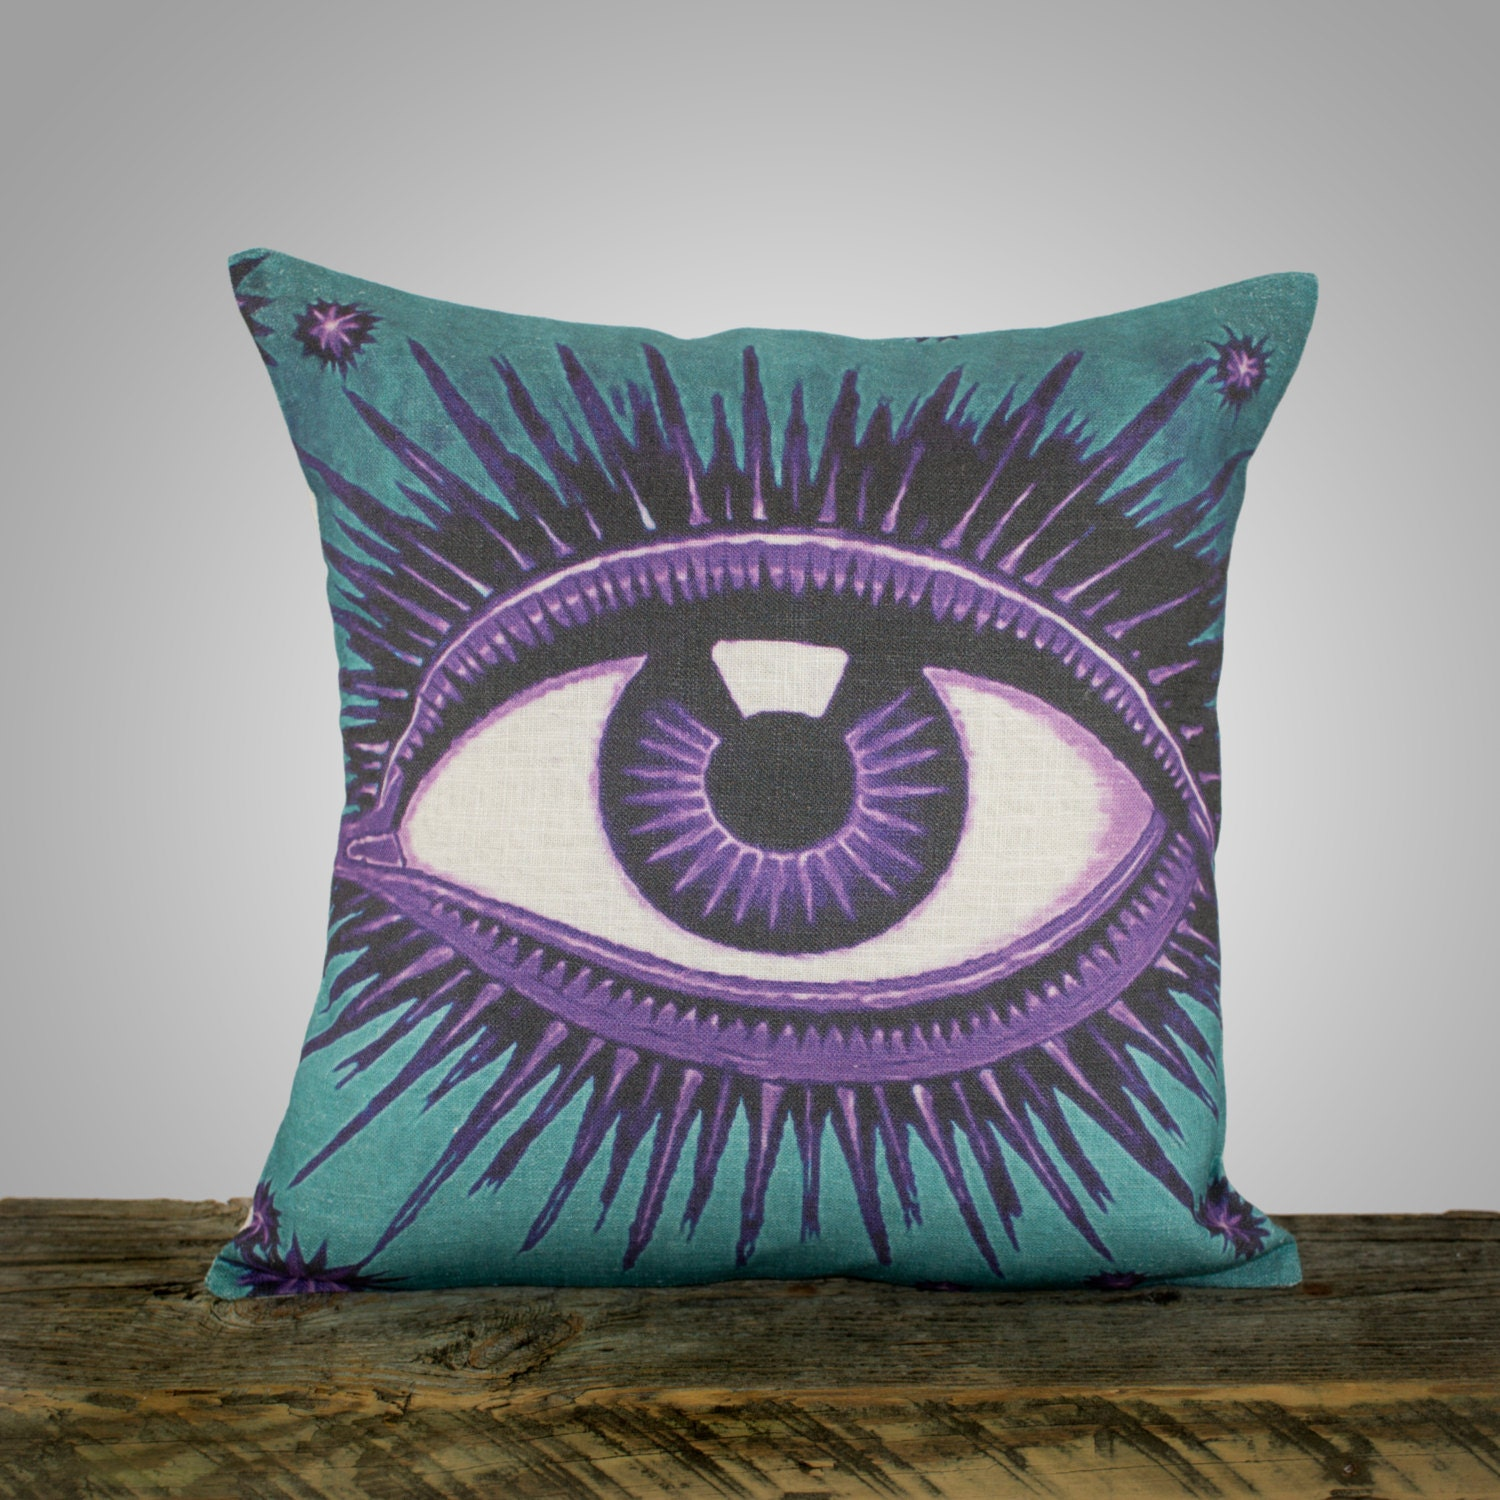 Eye Pillow Teal And Amethyst Decorative Throw Pillow Purple